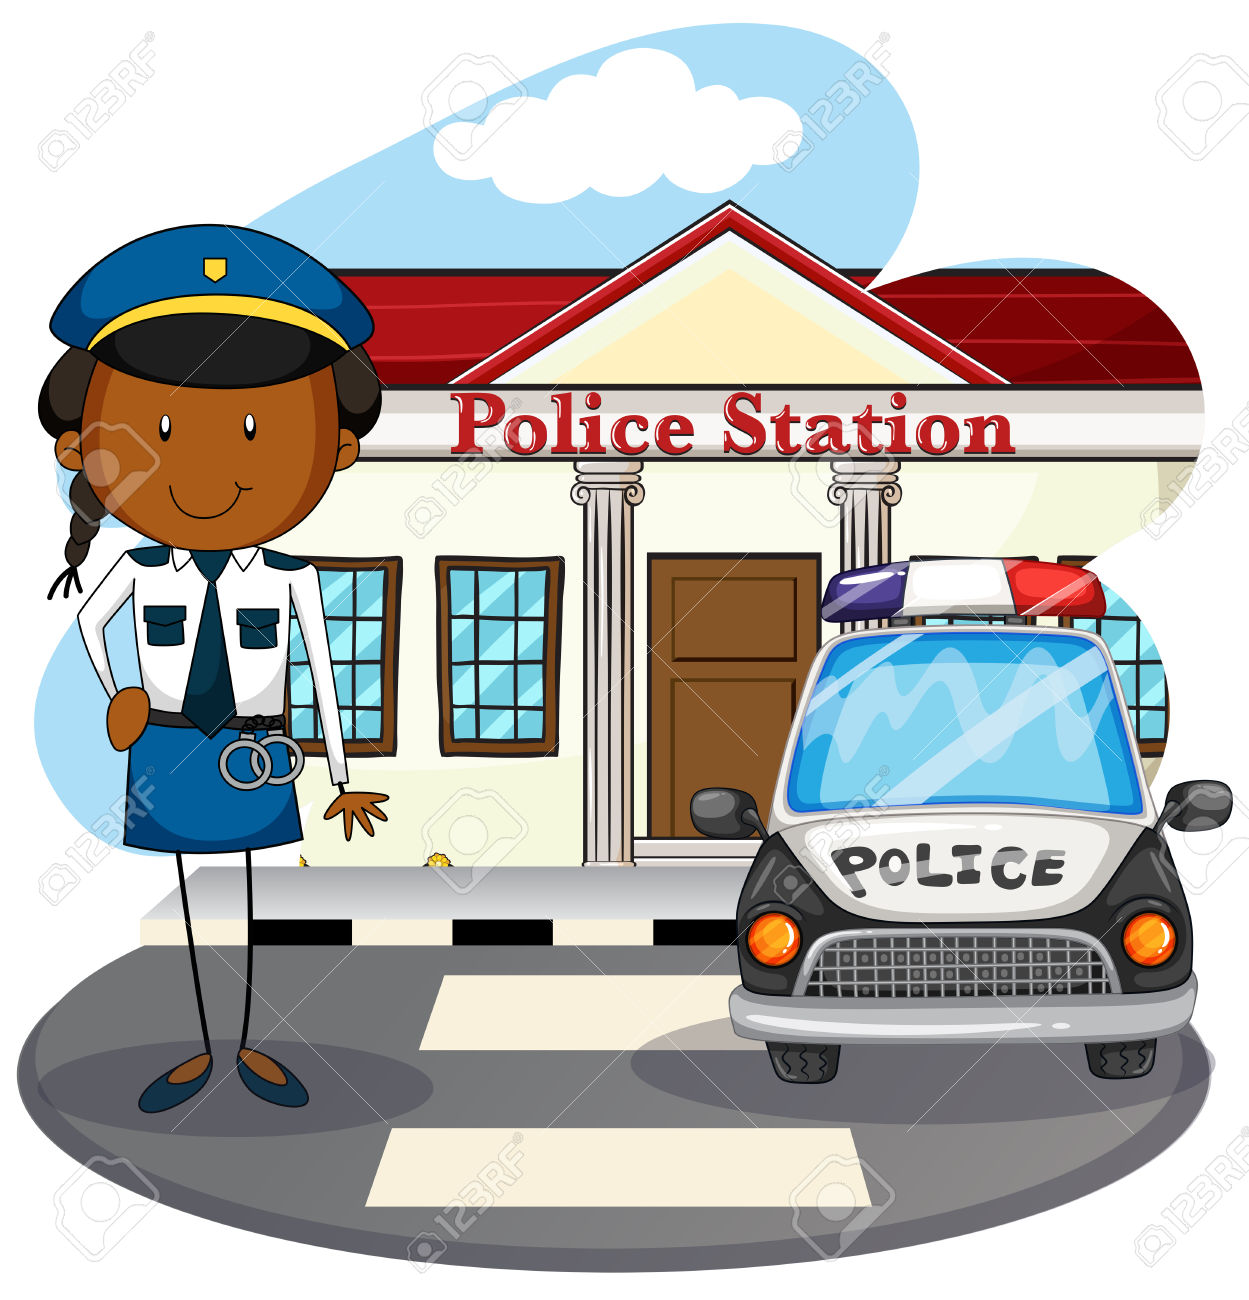 Police station clipart - Clipground Police Station Building Clipart Black And White